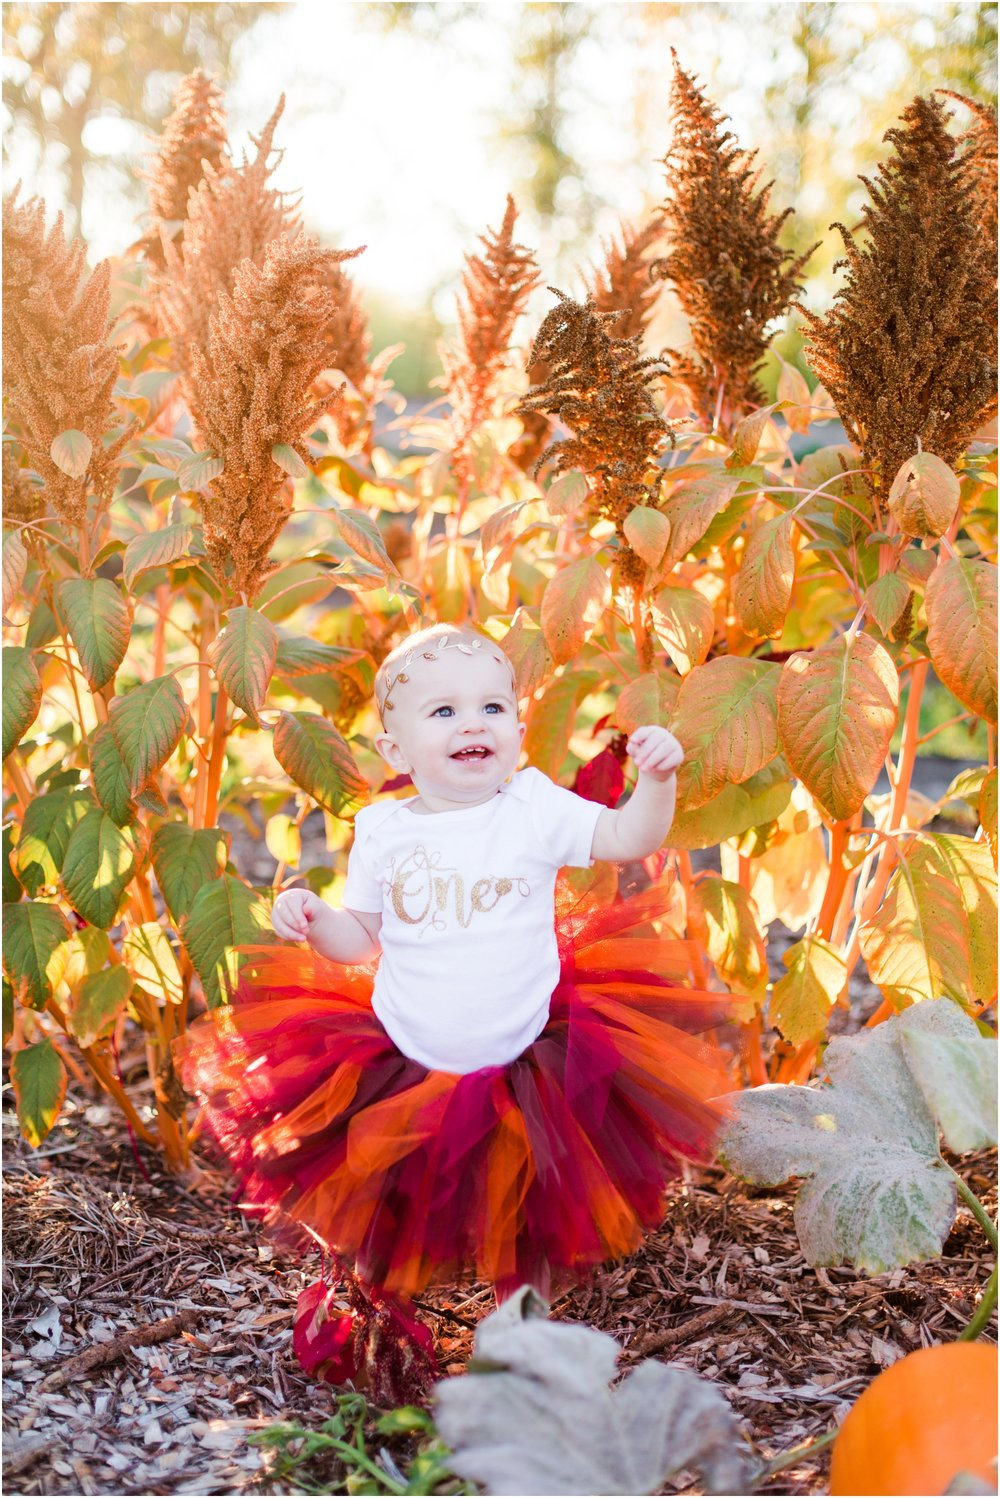 One Year old portriats by Briana Calderon Photography based in the Greater Seattle & Tacoma, WA_0952.jpg